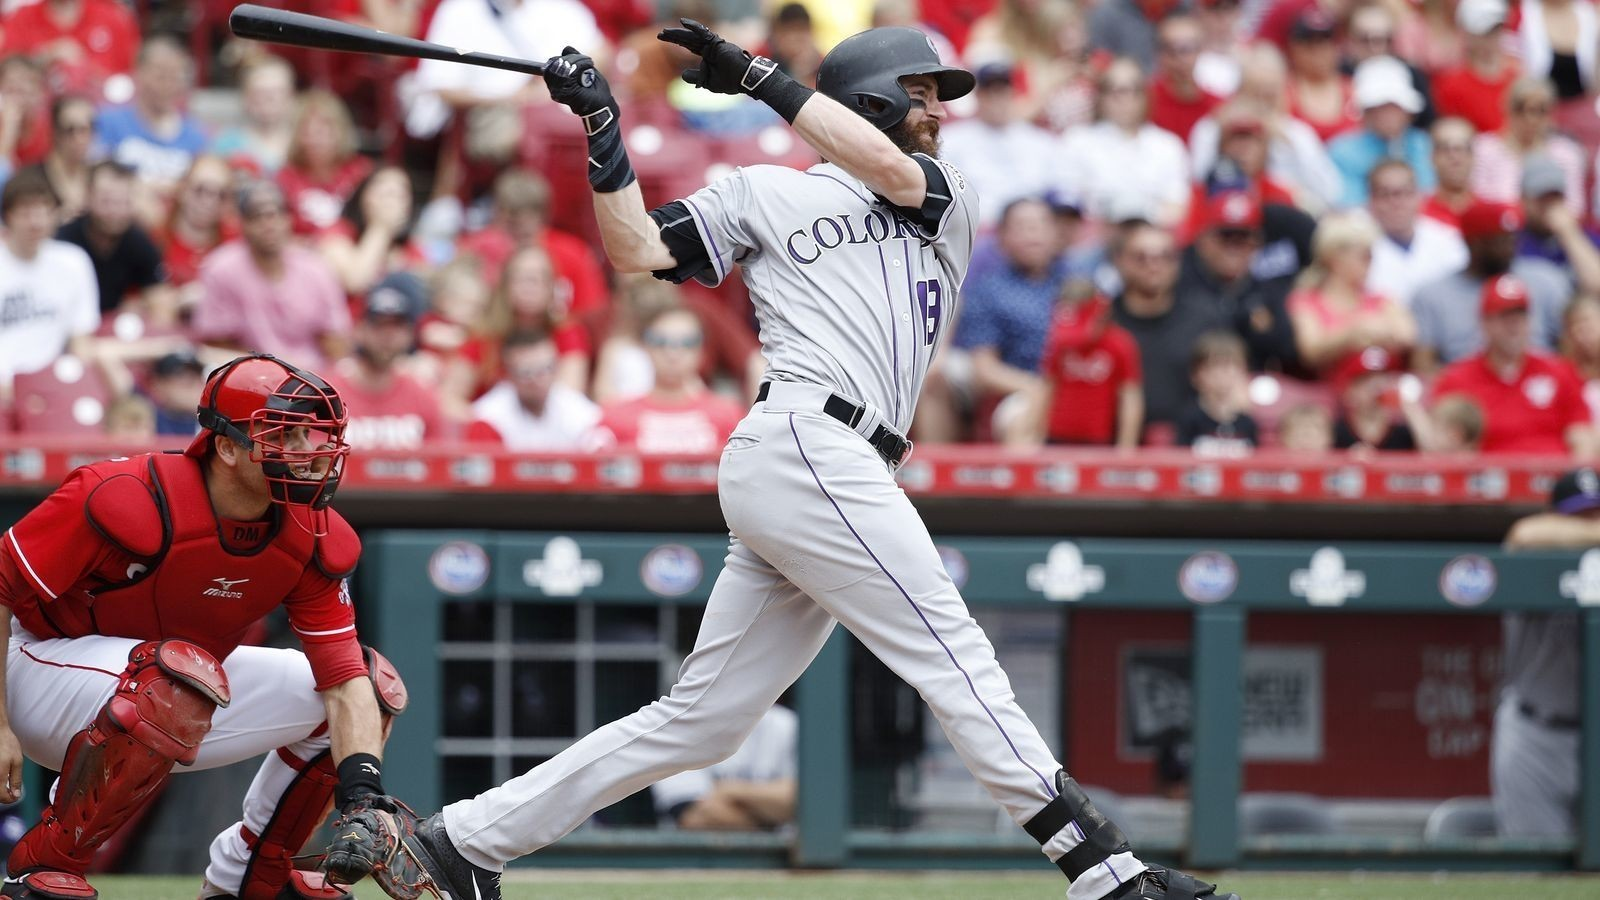 Charlie Blackmon just might be the best position player on the Rockies right now